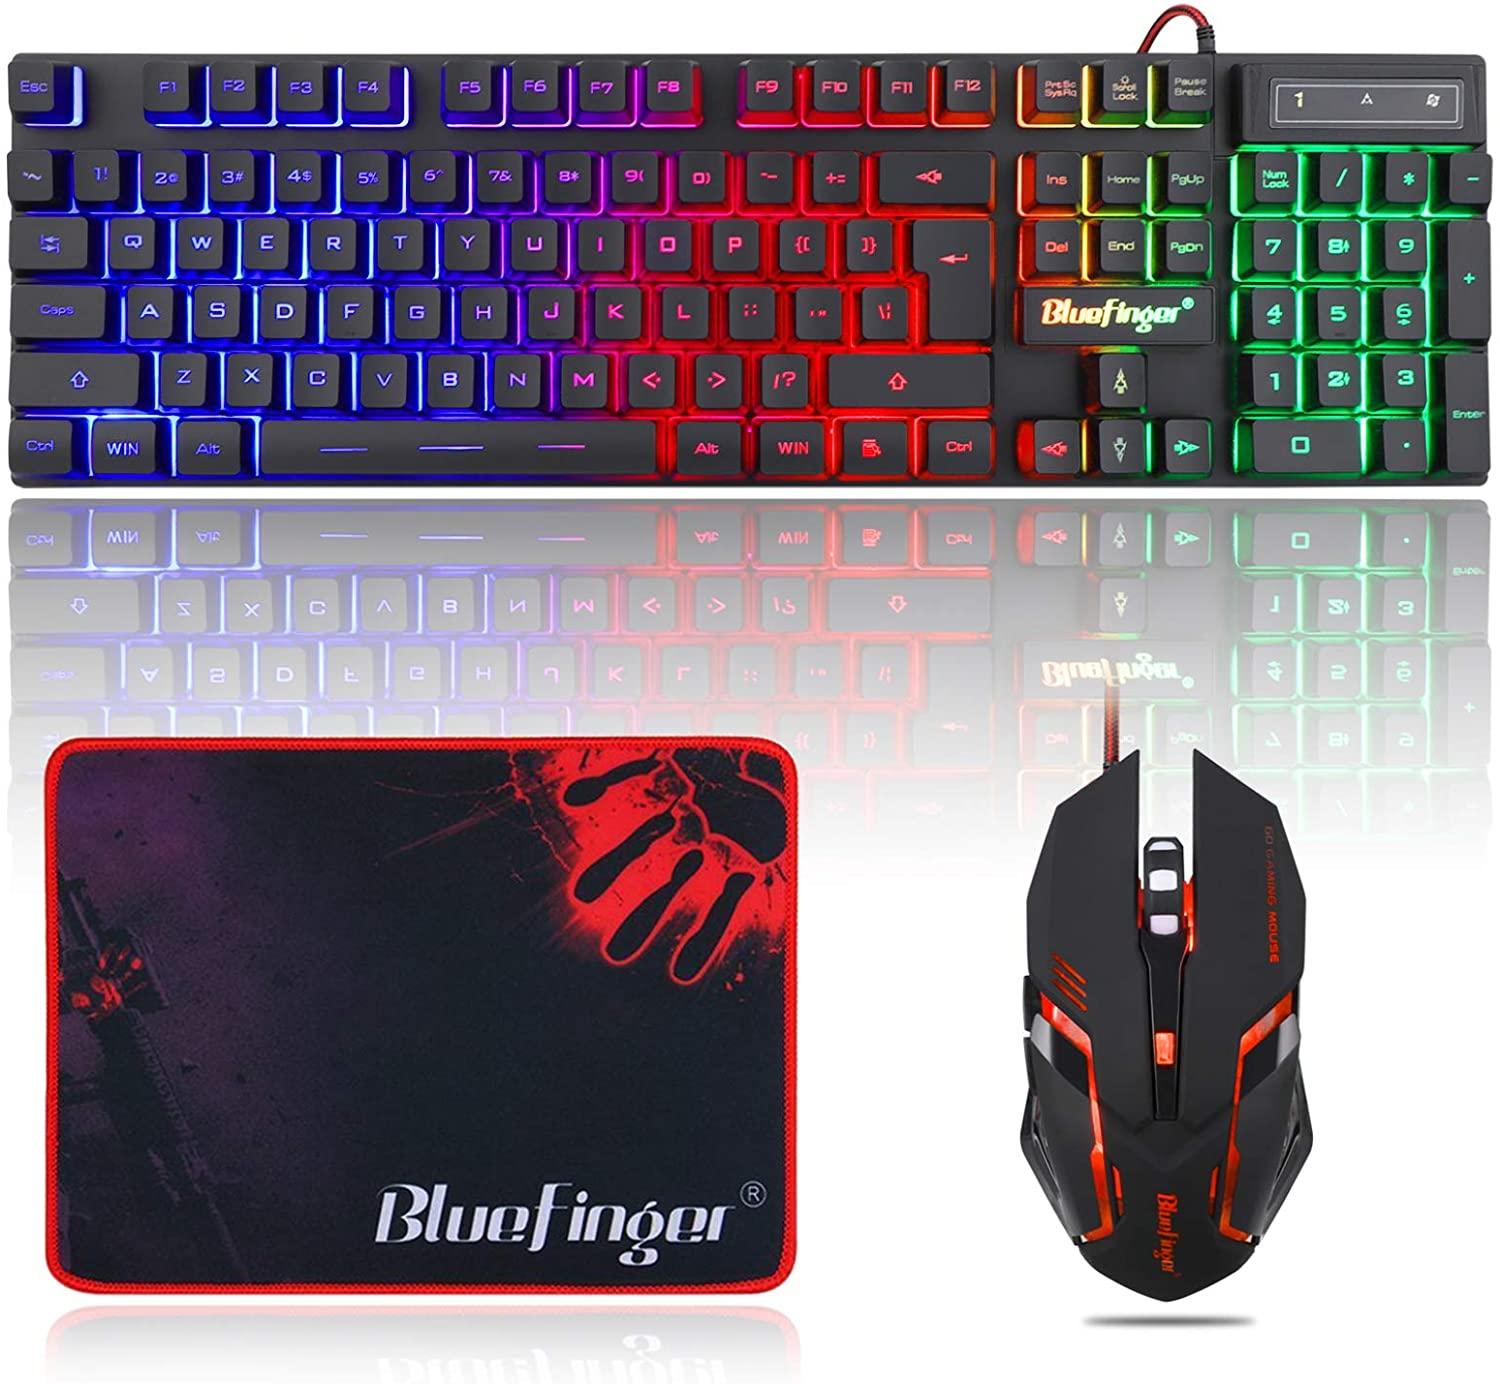 BlueFinger outlet RGB Gaming Keyboard Minneapolis Mall and Mouse Backlit USB Wire Combo